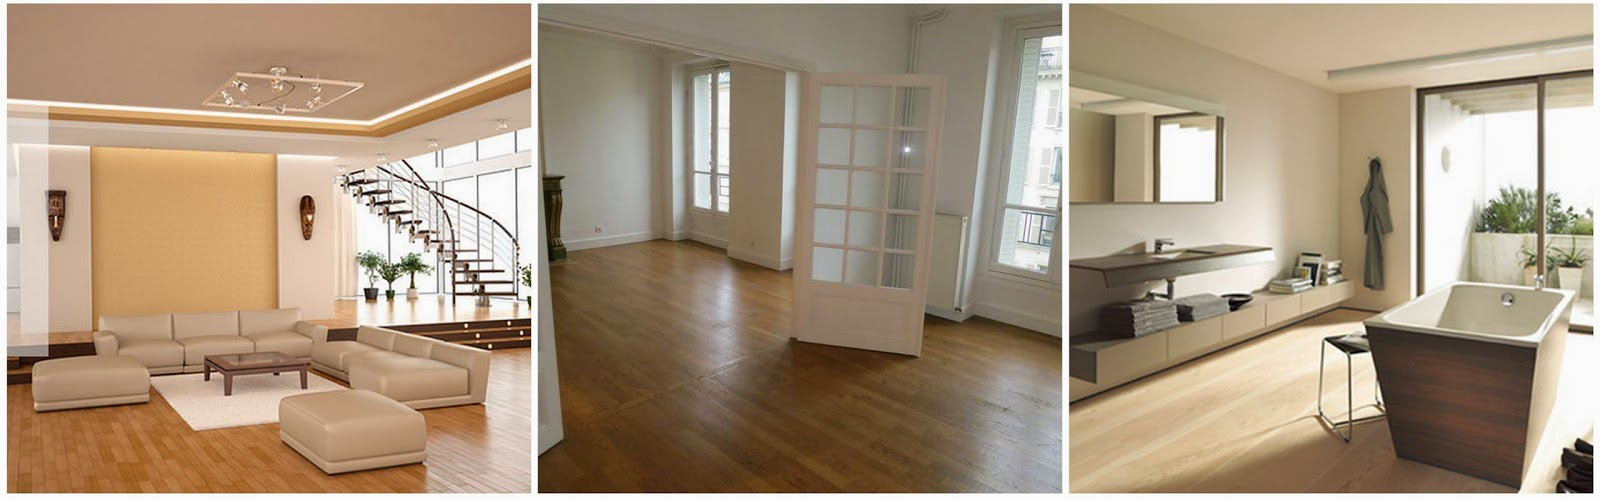 Travaux appartement 92190 meudon